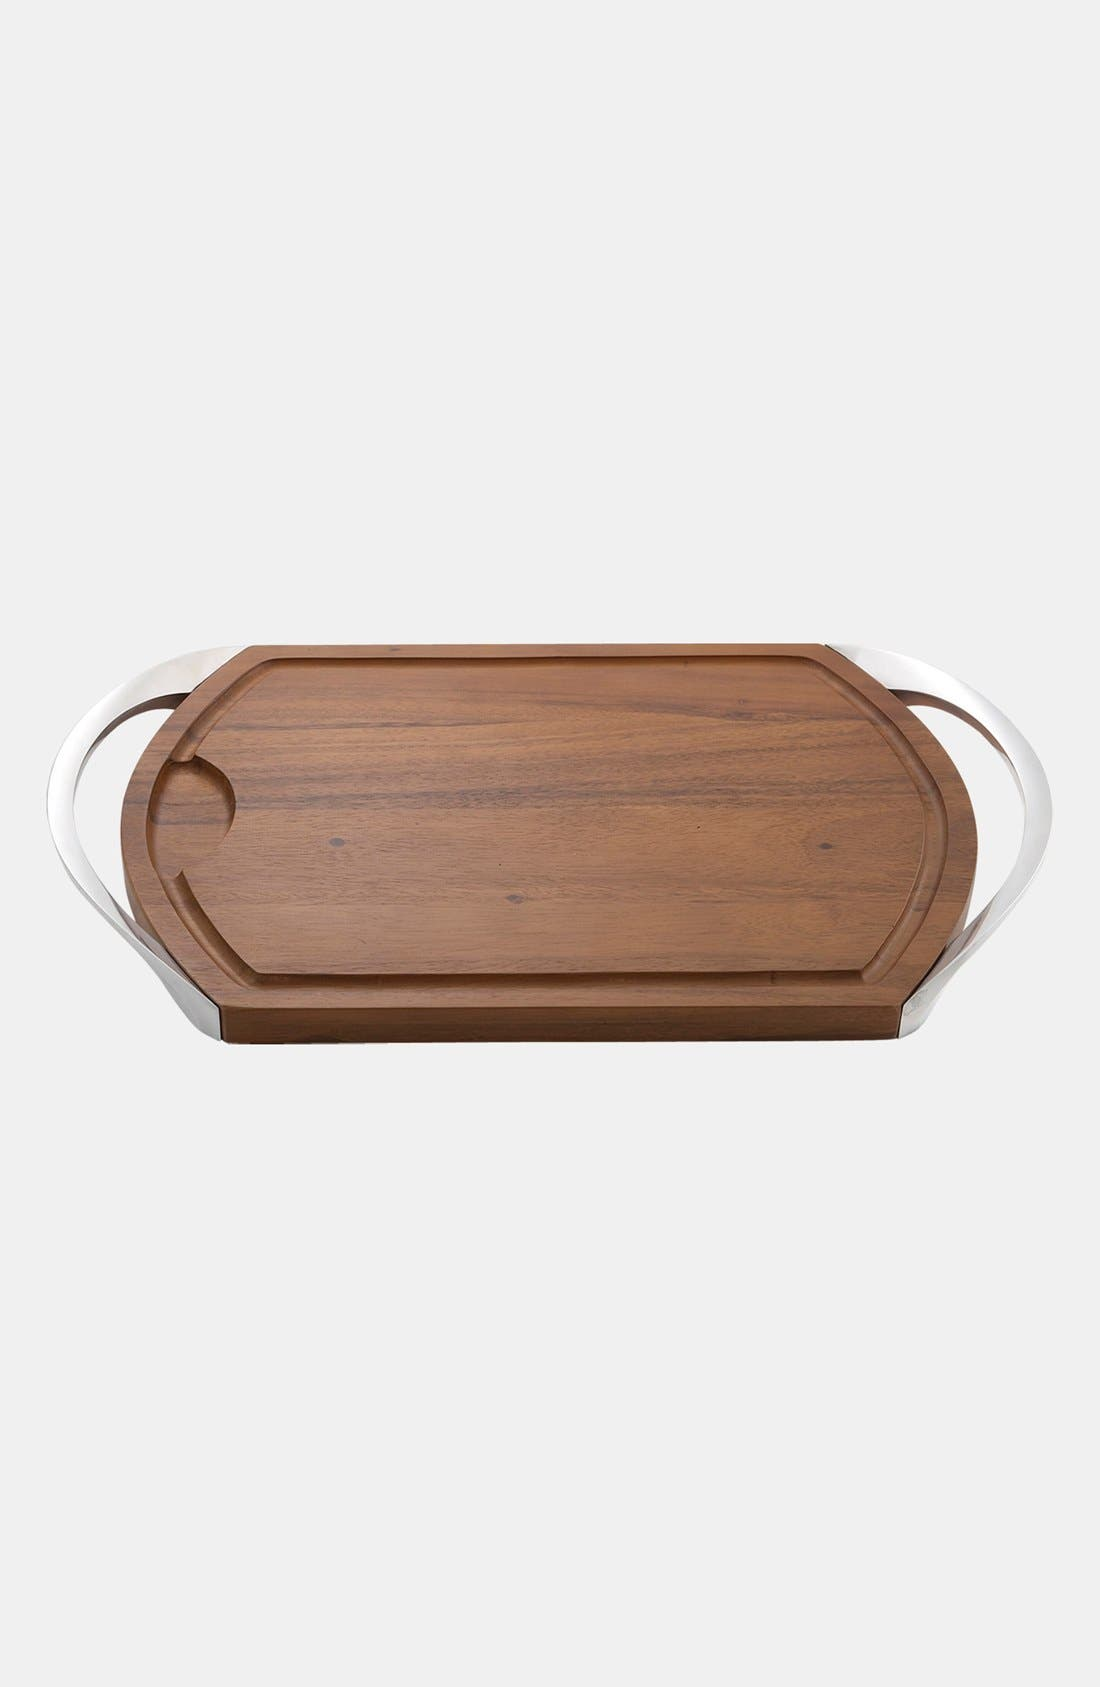 Carve & Serve Cutting Board,                             Main thumbnail 1, color,                             Silver